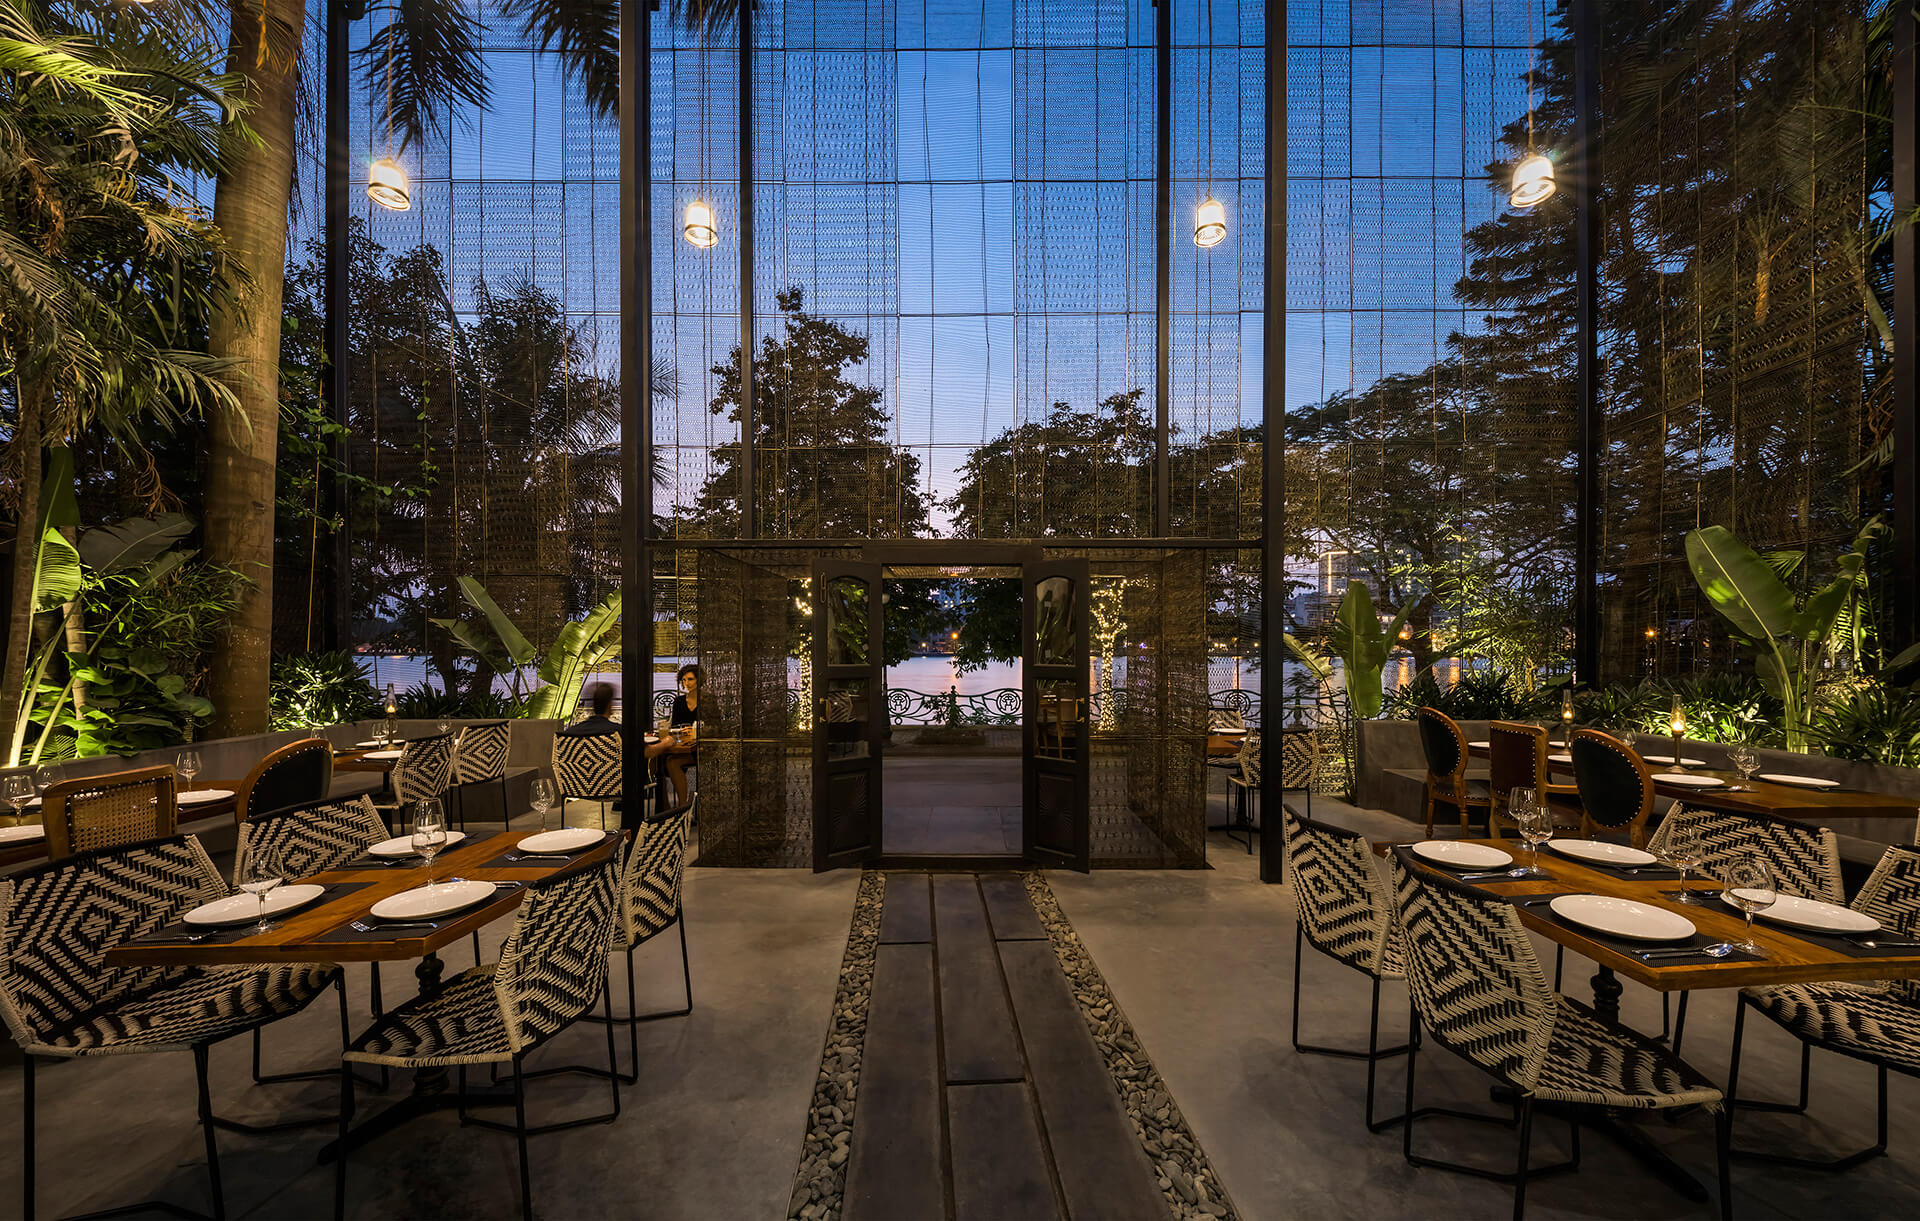 RASM, a restaurant in Hanoi, Vietnam, adapts the elements of its Indian roots | RASM restaurant | Studio VDGA | STIRworld